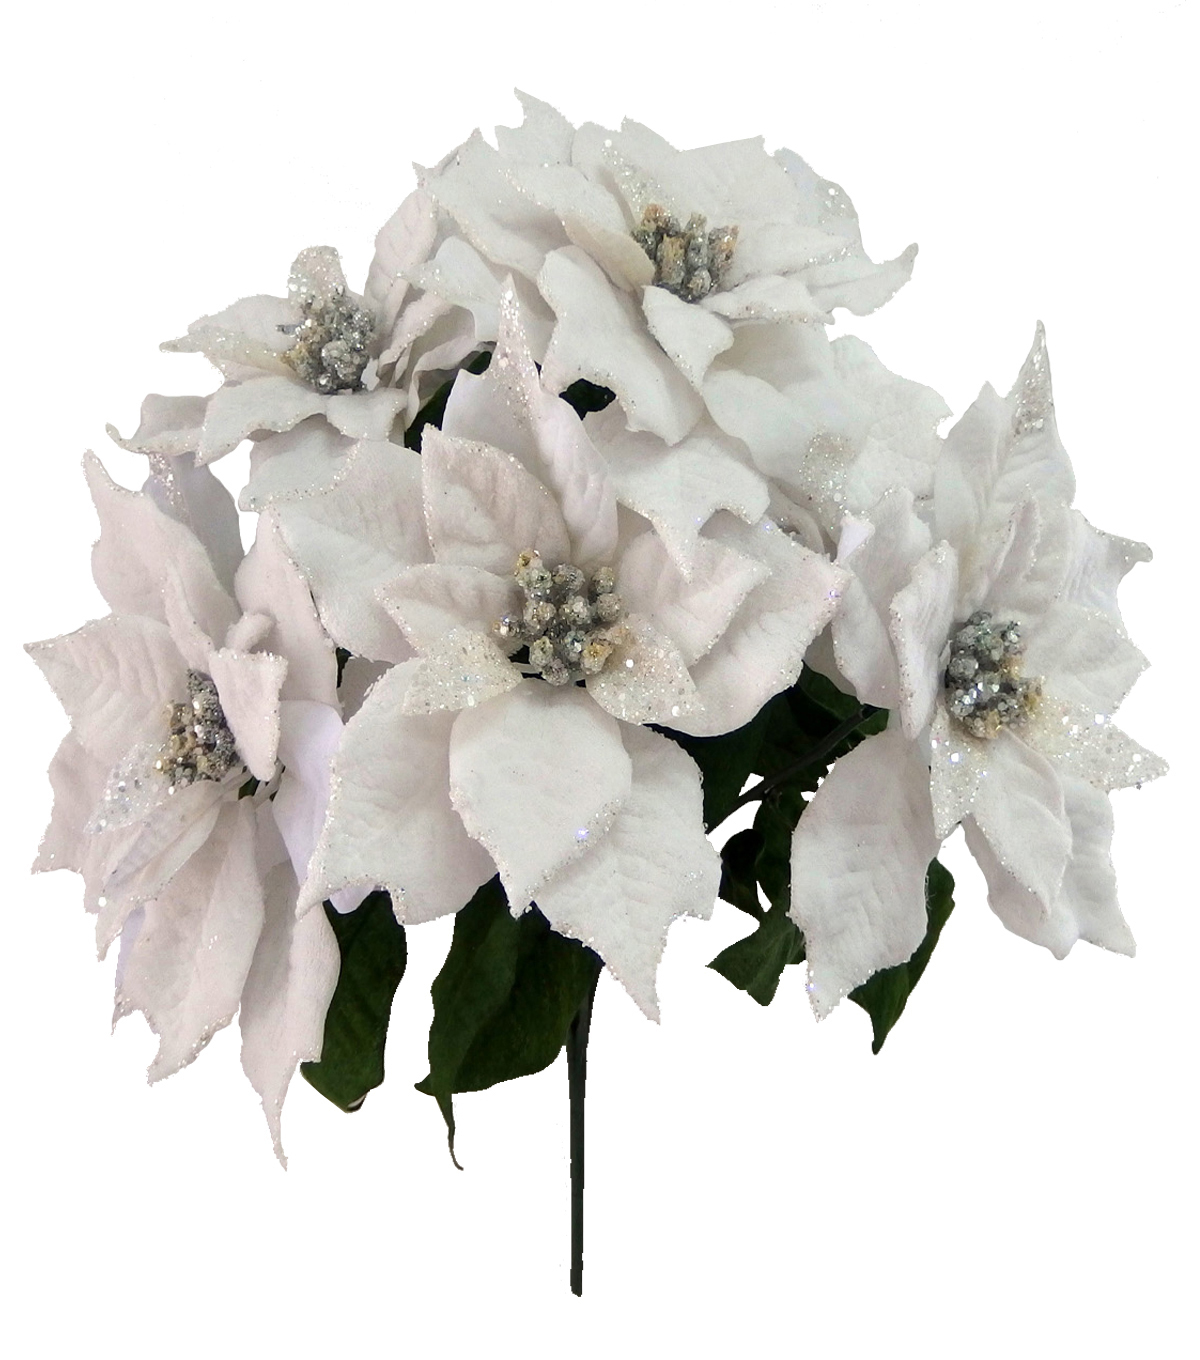 Blooming Holiday Christmas Velvet Gem Poinsettia Bush-White